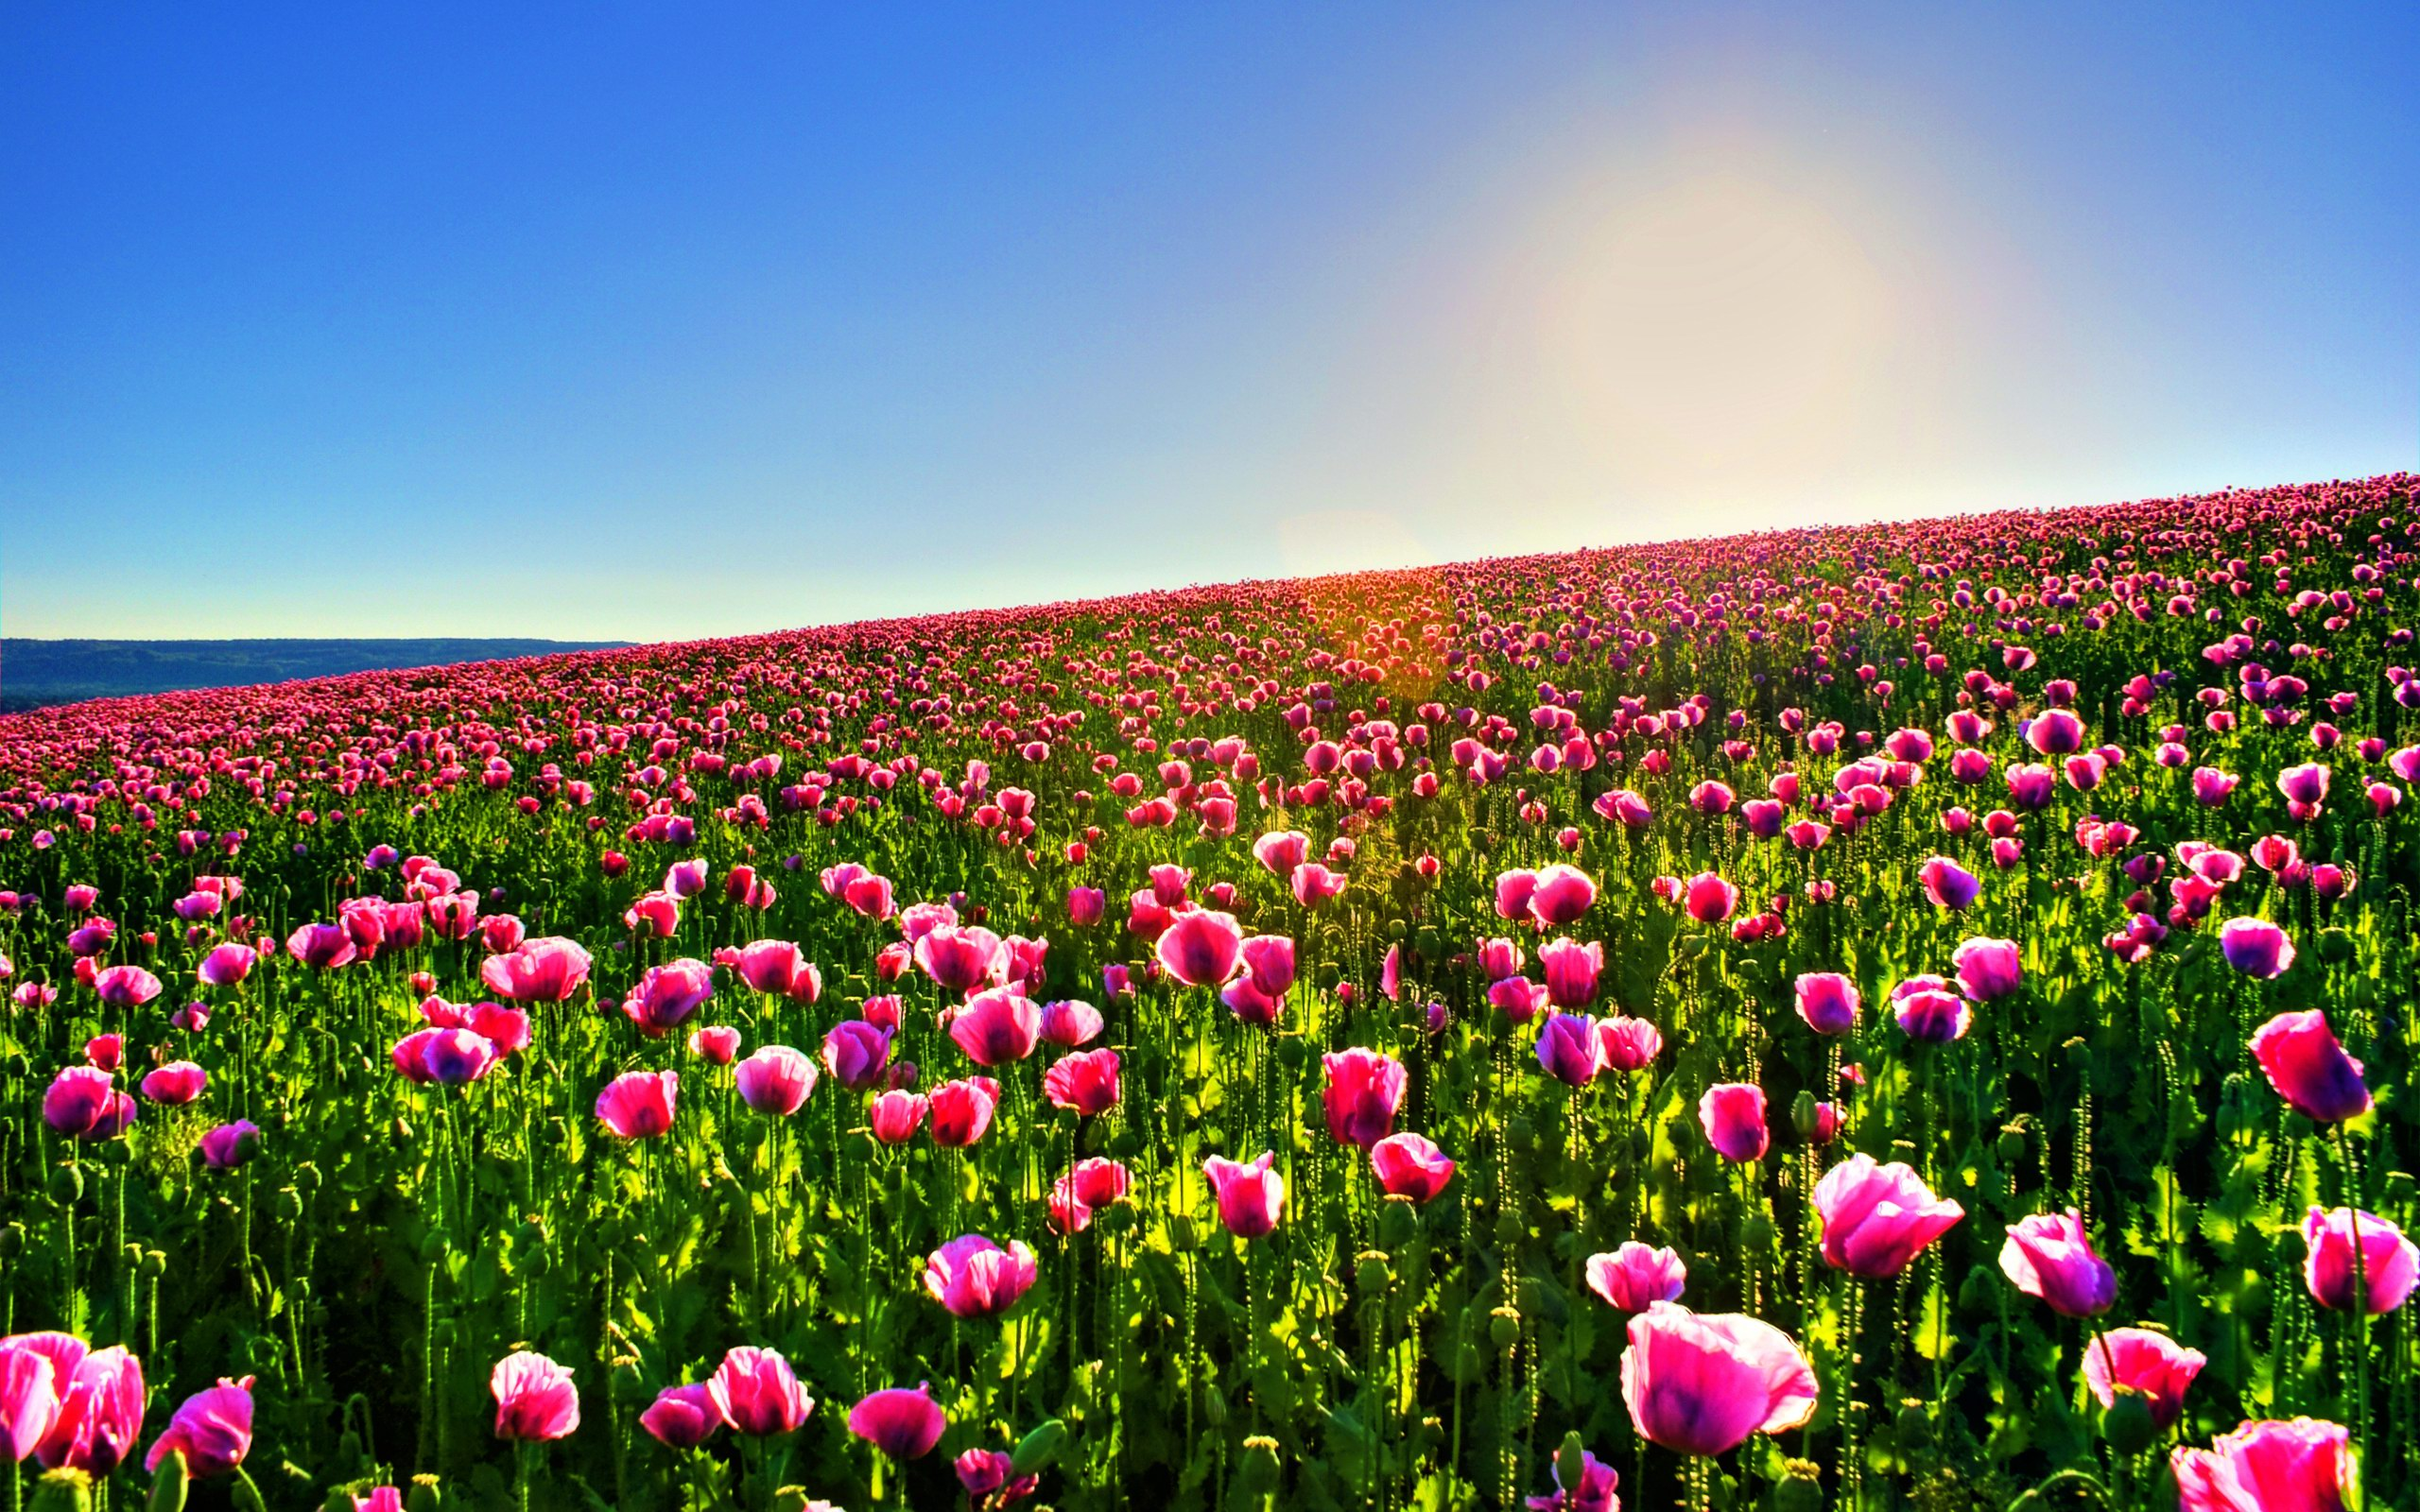 flower fields flower garden background pink 2560x1600 download hd wallpaper wallpapertip flower garden background pink